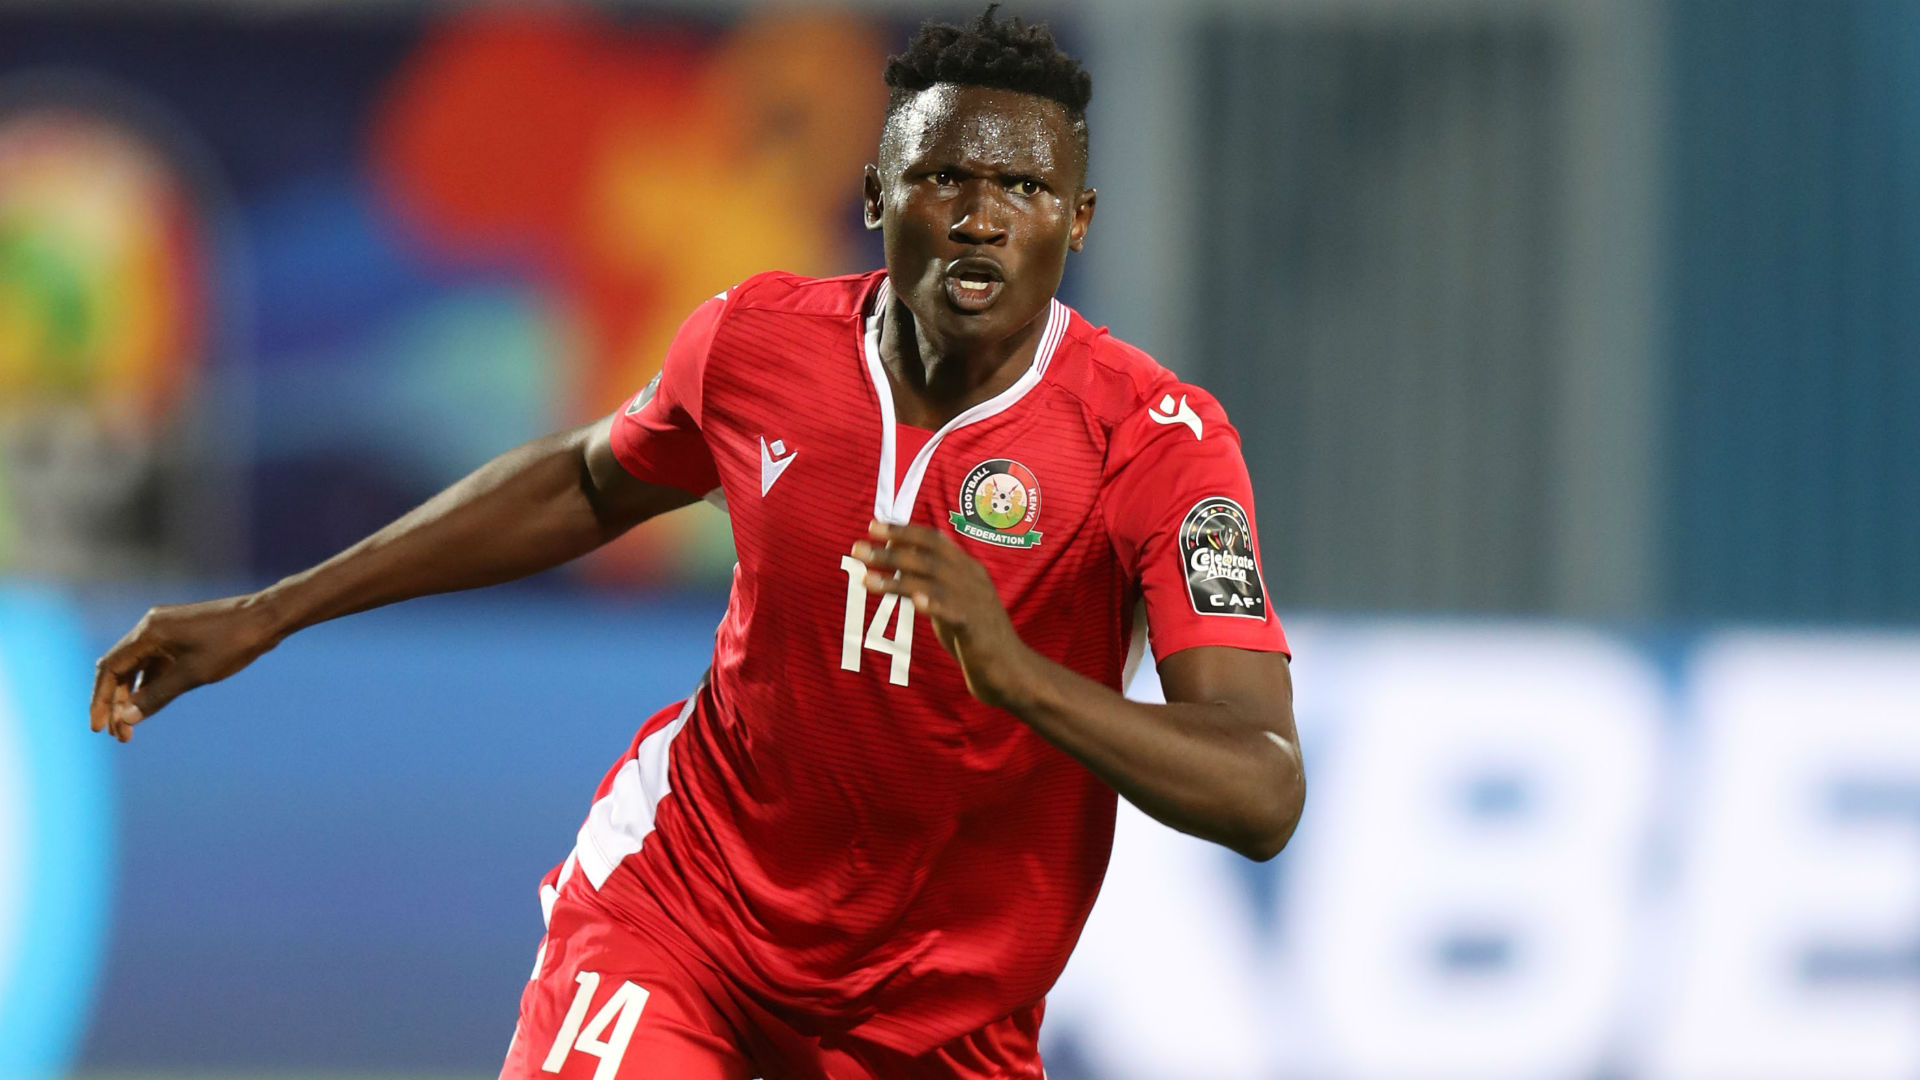 Who is the GOAT?' – Kenyans compare Olunga to Ronaldo after goal ...